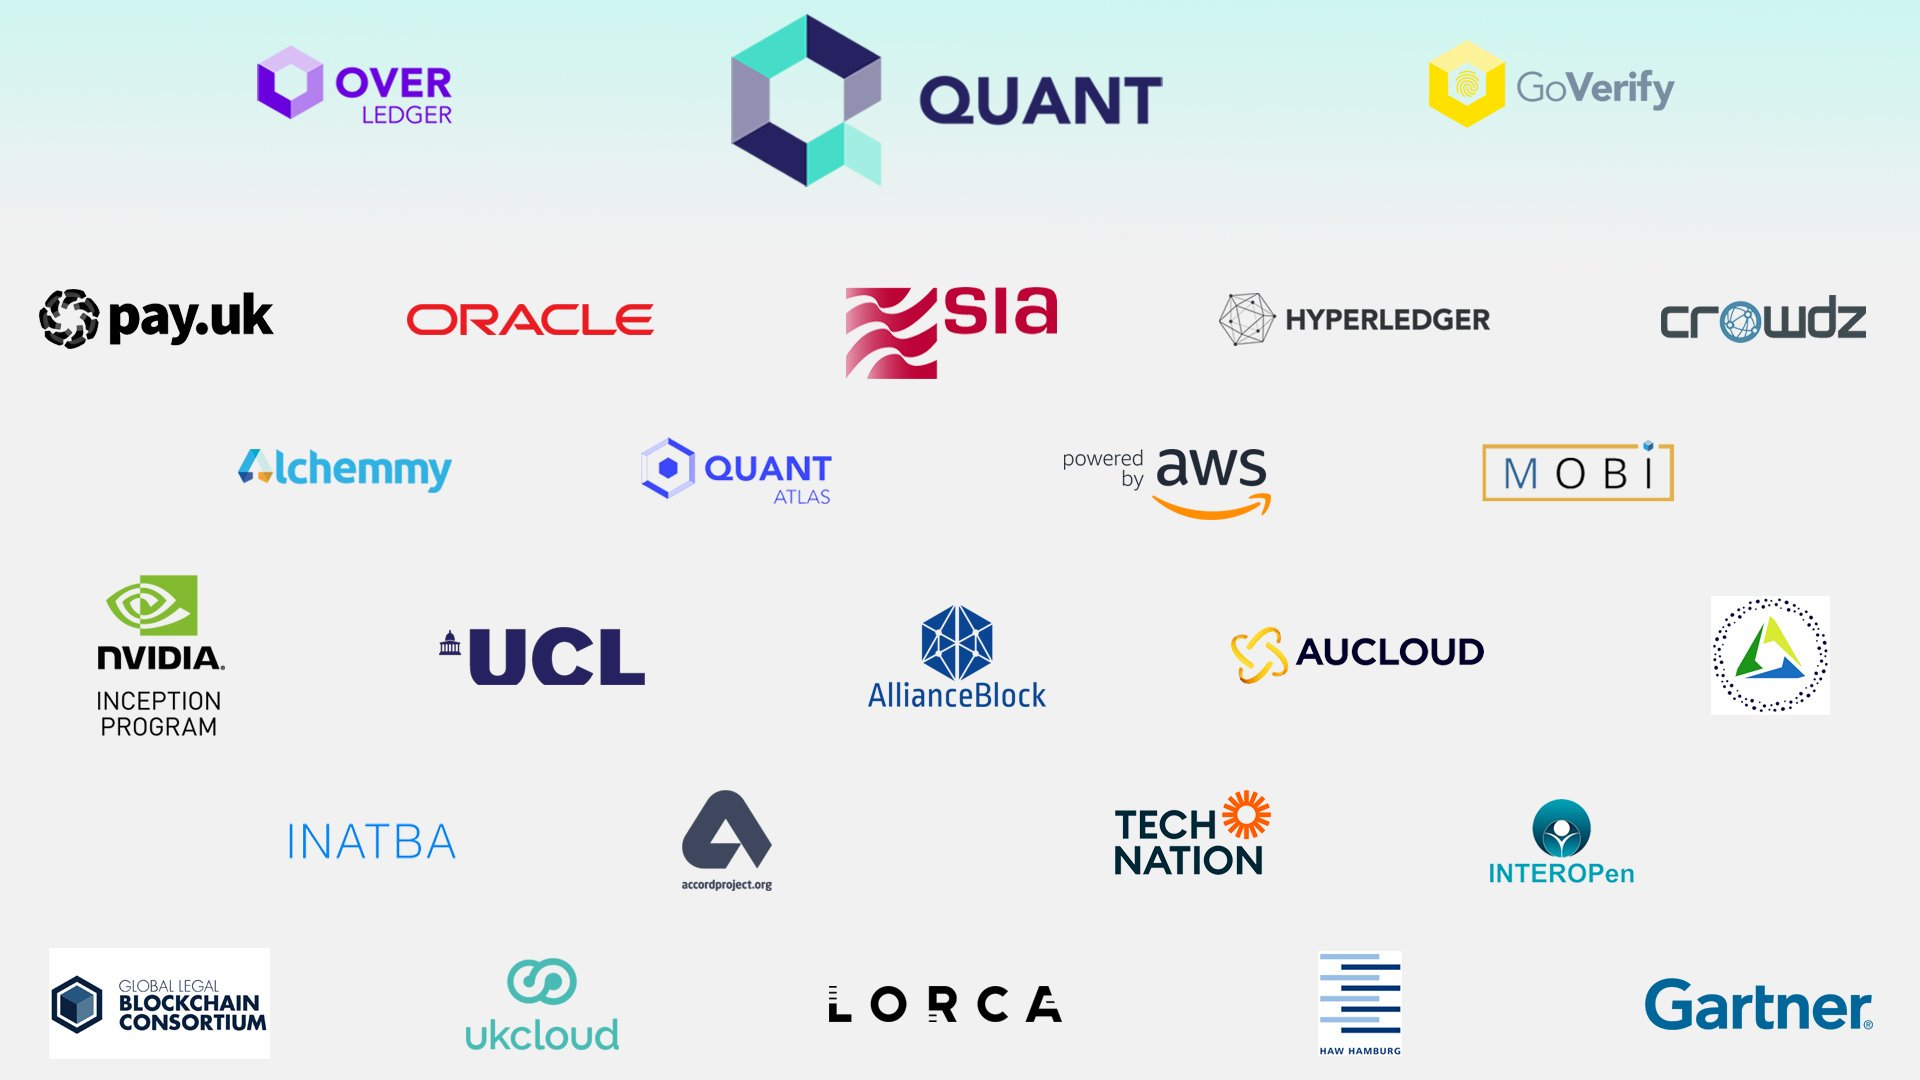 Imagine there was a project facilitating the mass adoption of #blockchain for enterprise, governments and Central Banks..  Imagine if that project had a token where all the volume from mass adoption moved through it..  How valuable would that token be?  $QNT $IDEX #crypto #DLT https://t.co/l42mu83YpV